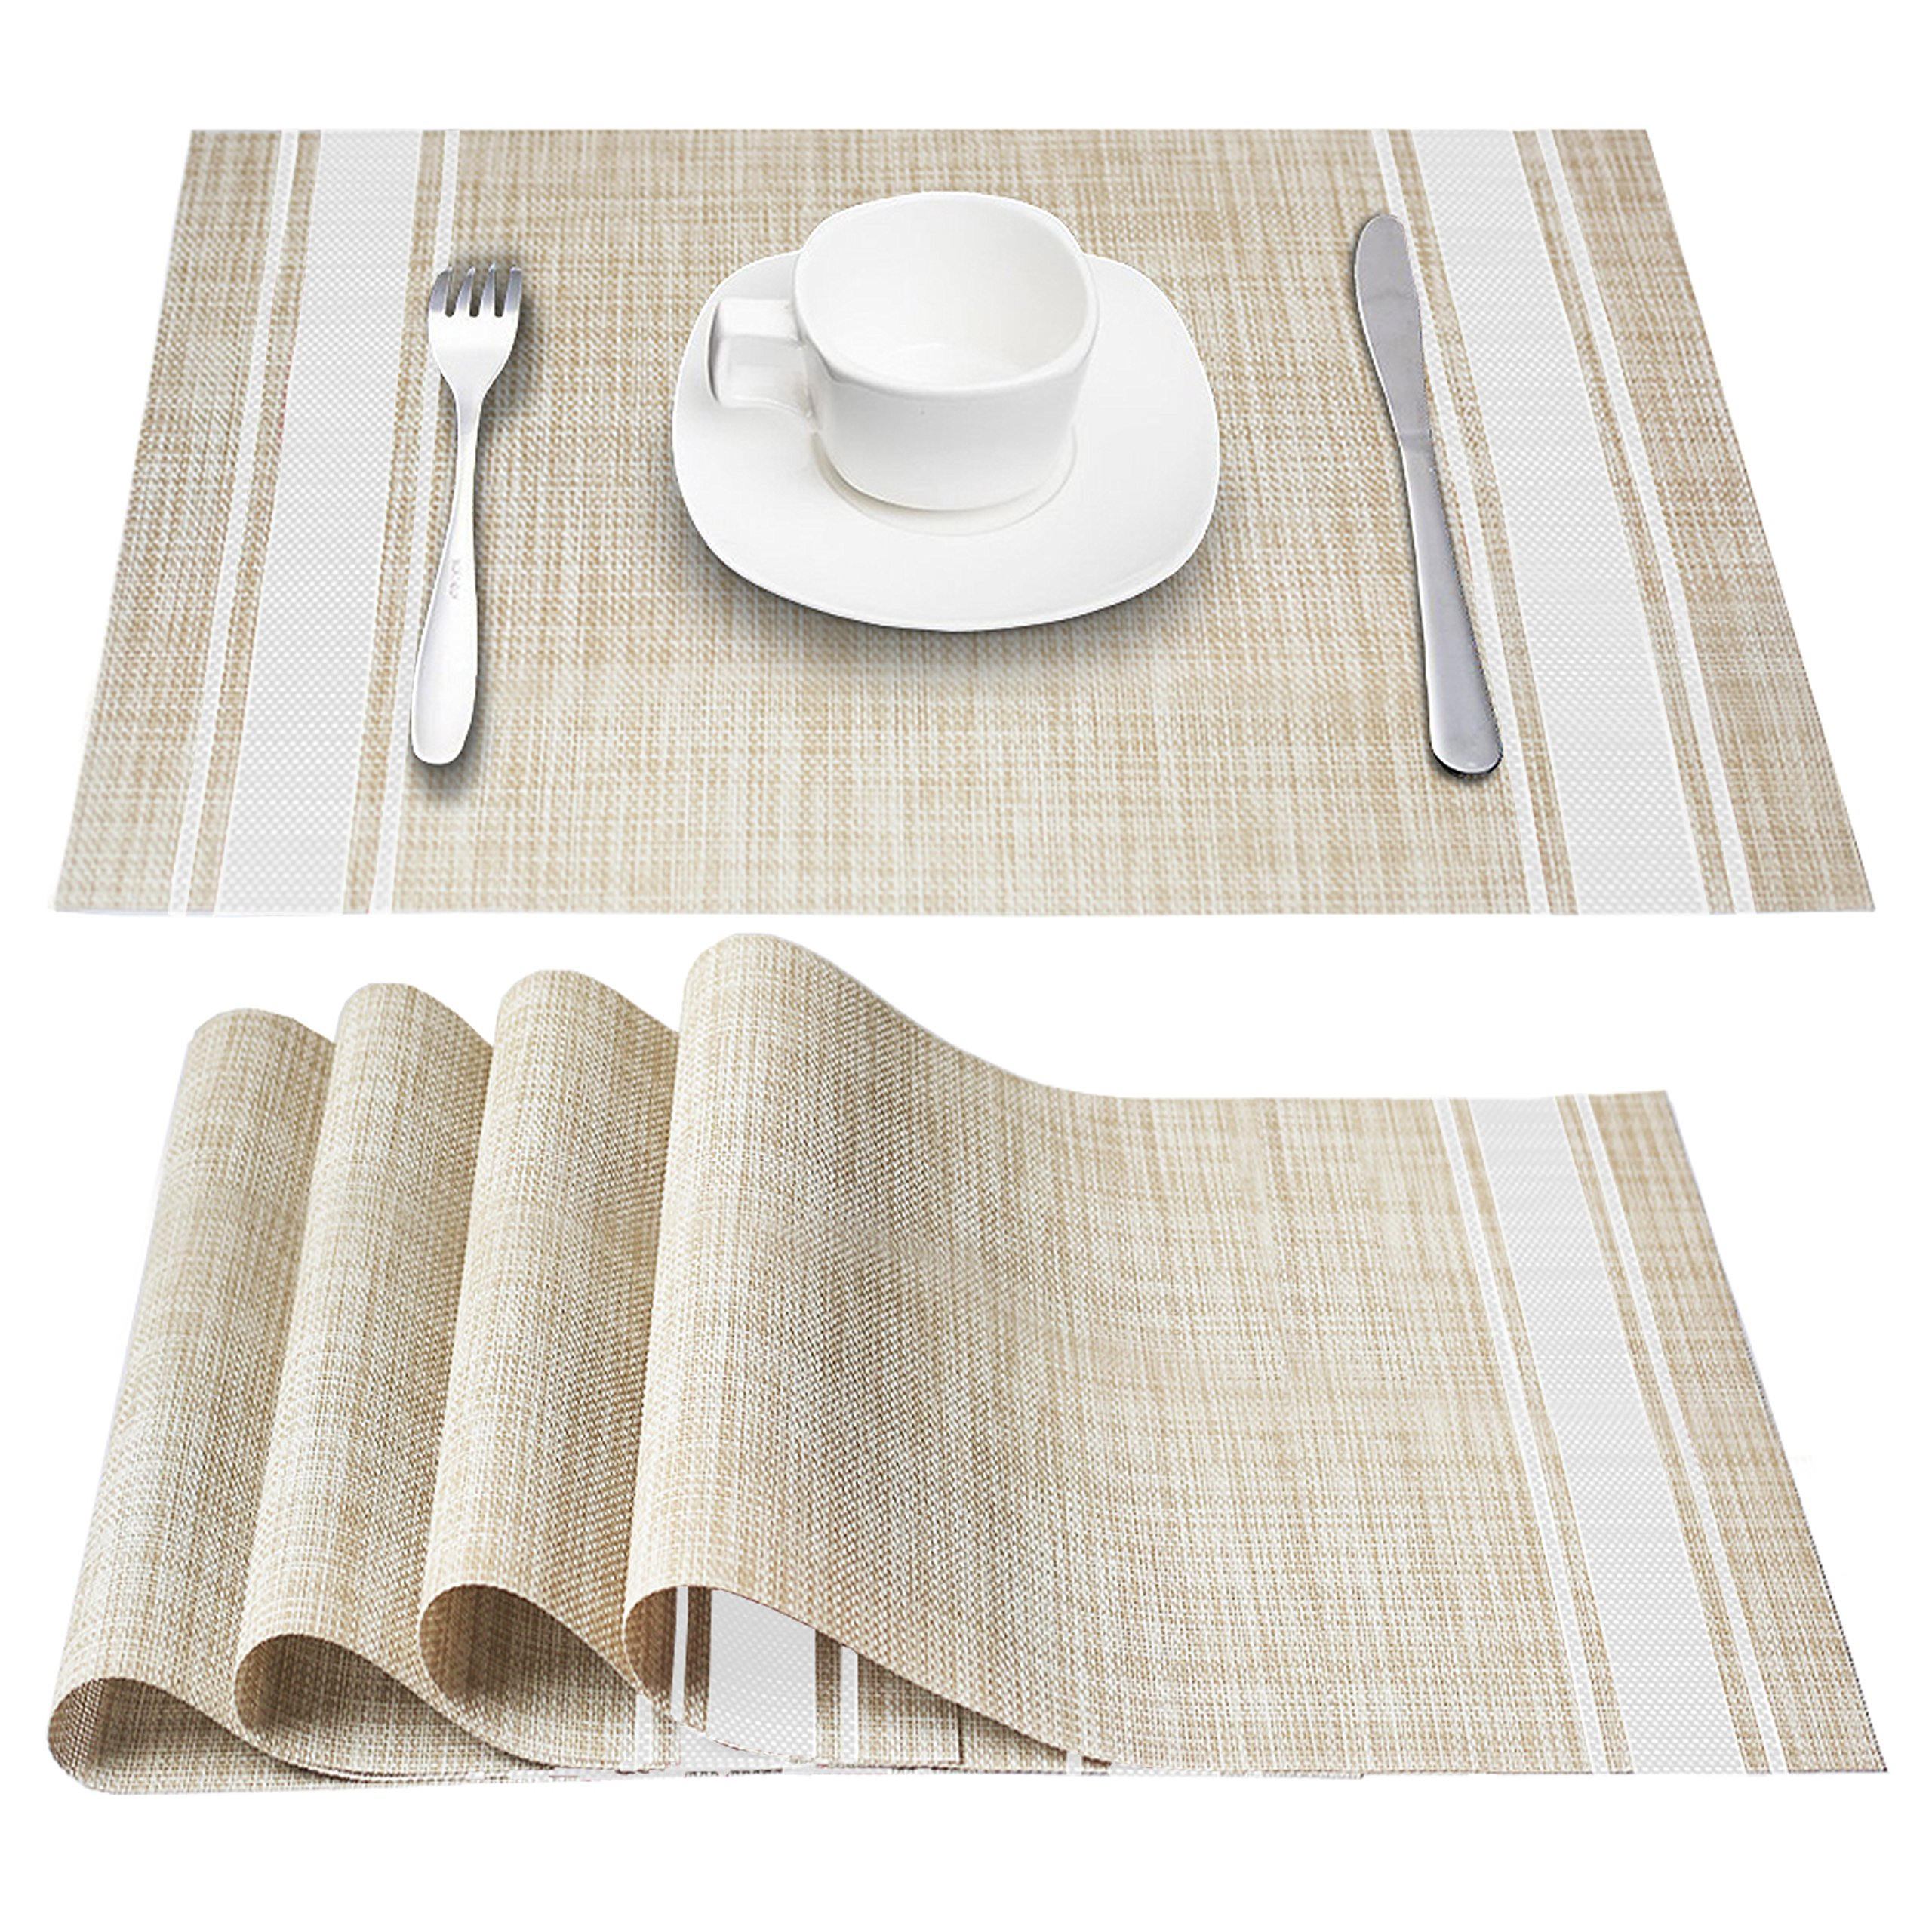 DACHUI Placemats, Heat-resistant Placemats Stain Resistant Anti-skid Washable PVC Table Mats Woven Vinyl Placemats, Set of 4 (White)